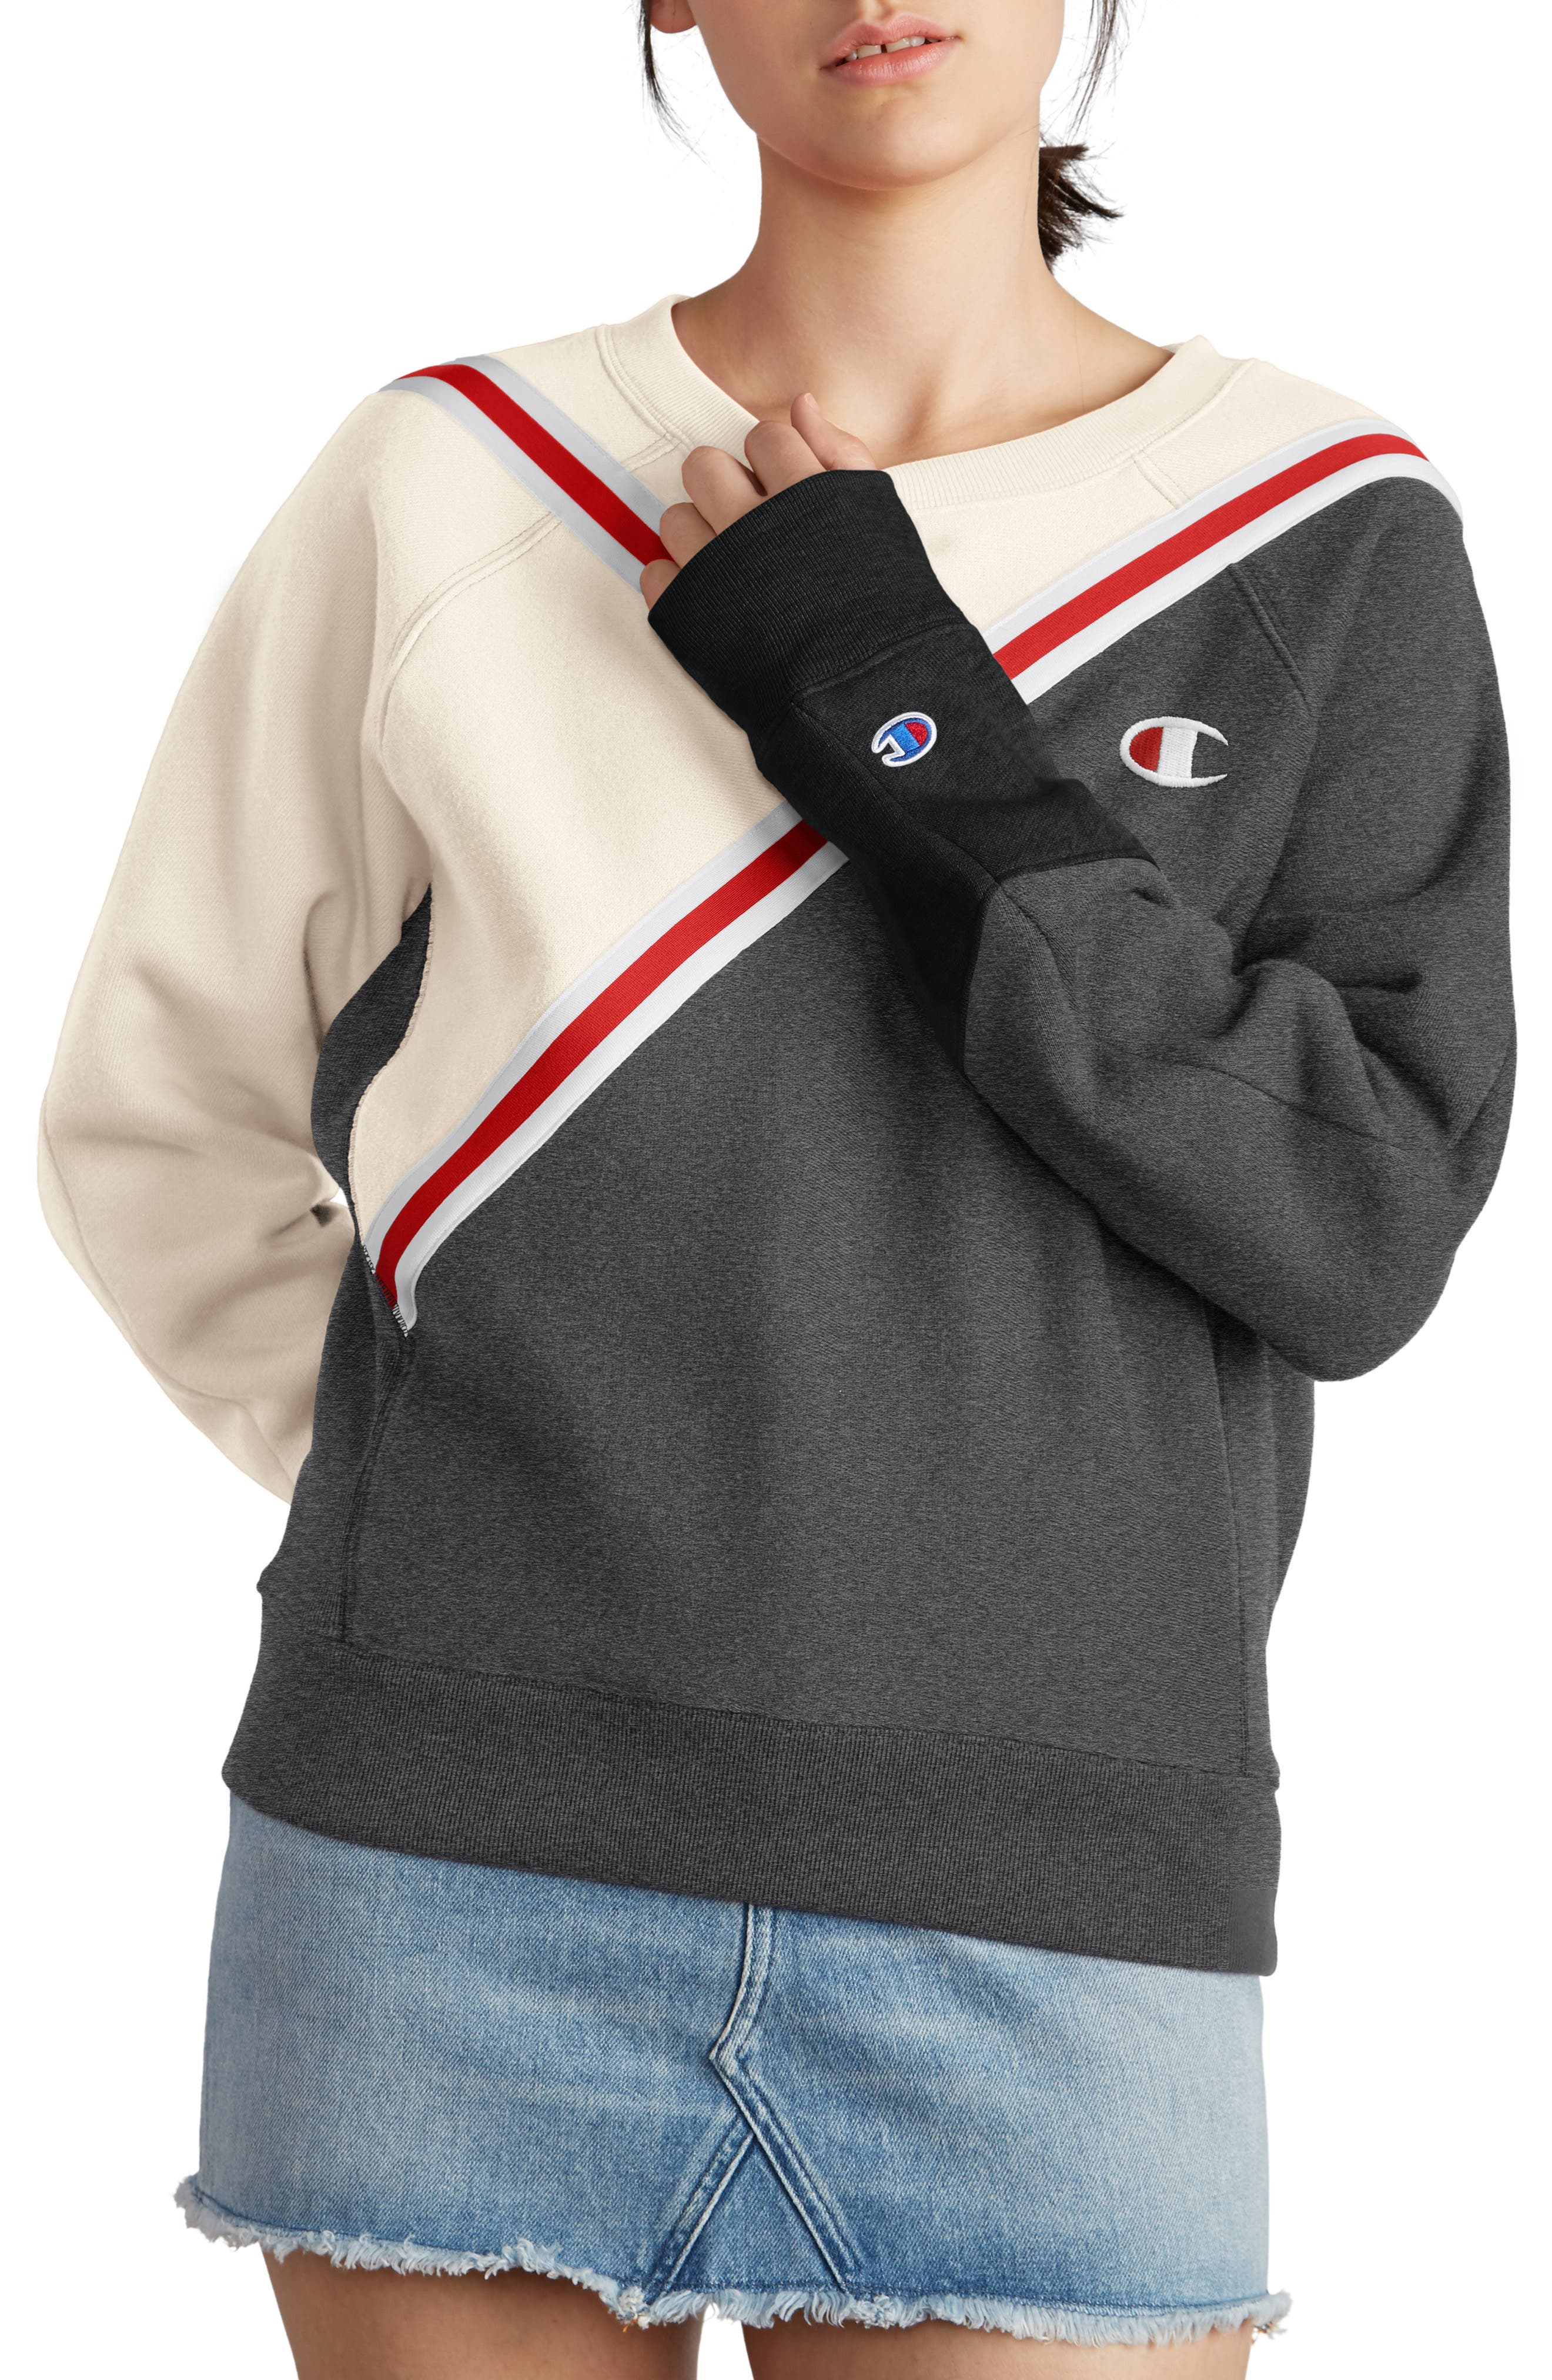 Colorblock Reverse Fleece Sweatshirt,                             Main thumbnail 1, color,                             QUARTZ CRM/GRANITE/BLACK